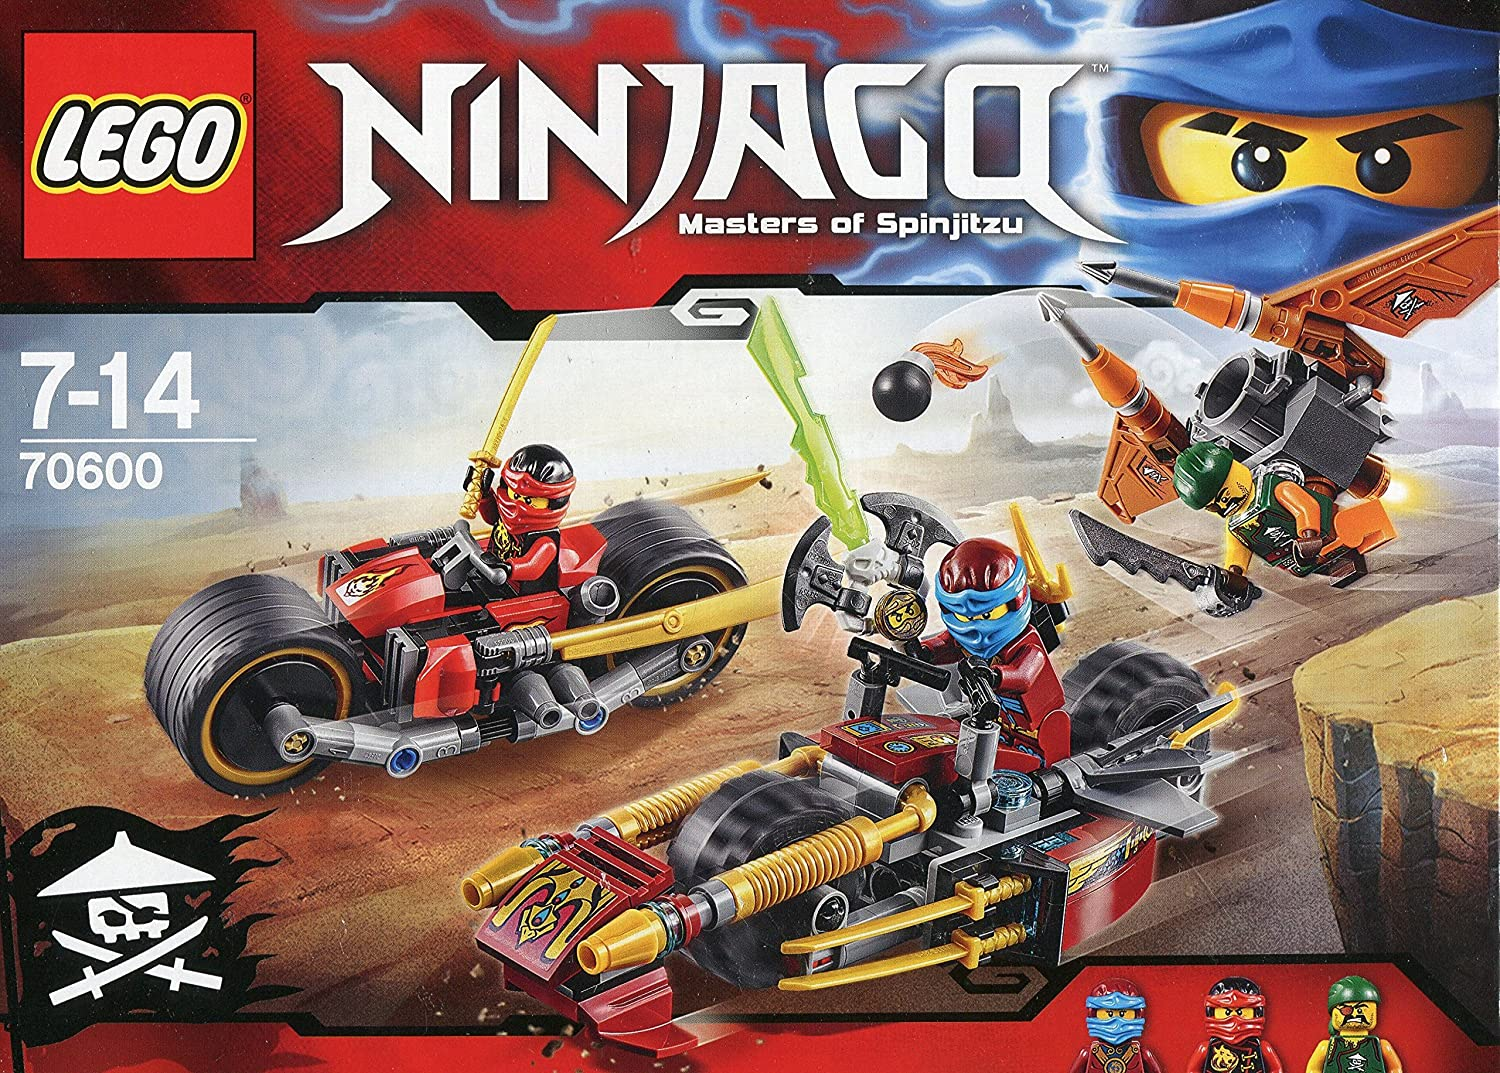 2016 NEW LEGO Ninjago 70600 Ninja Bike Chase - 231pcs Building Kit